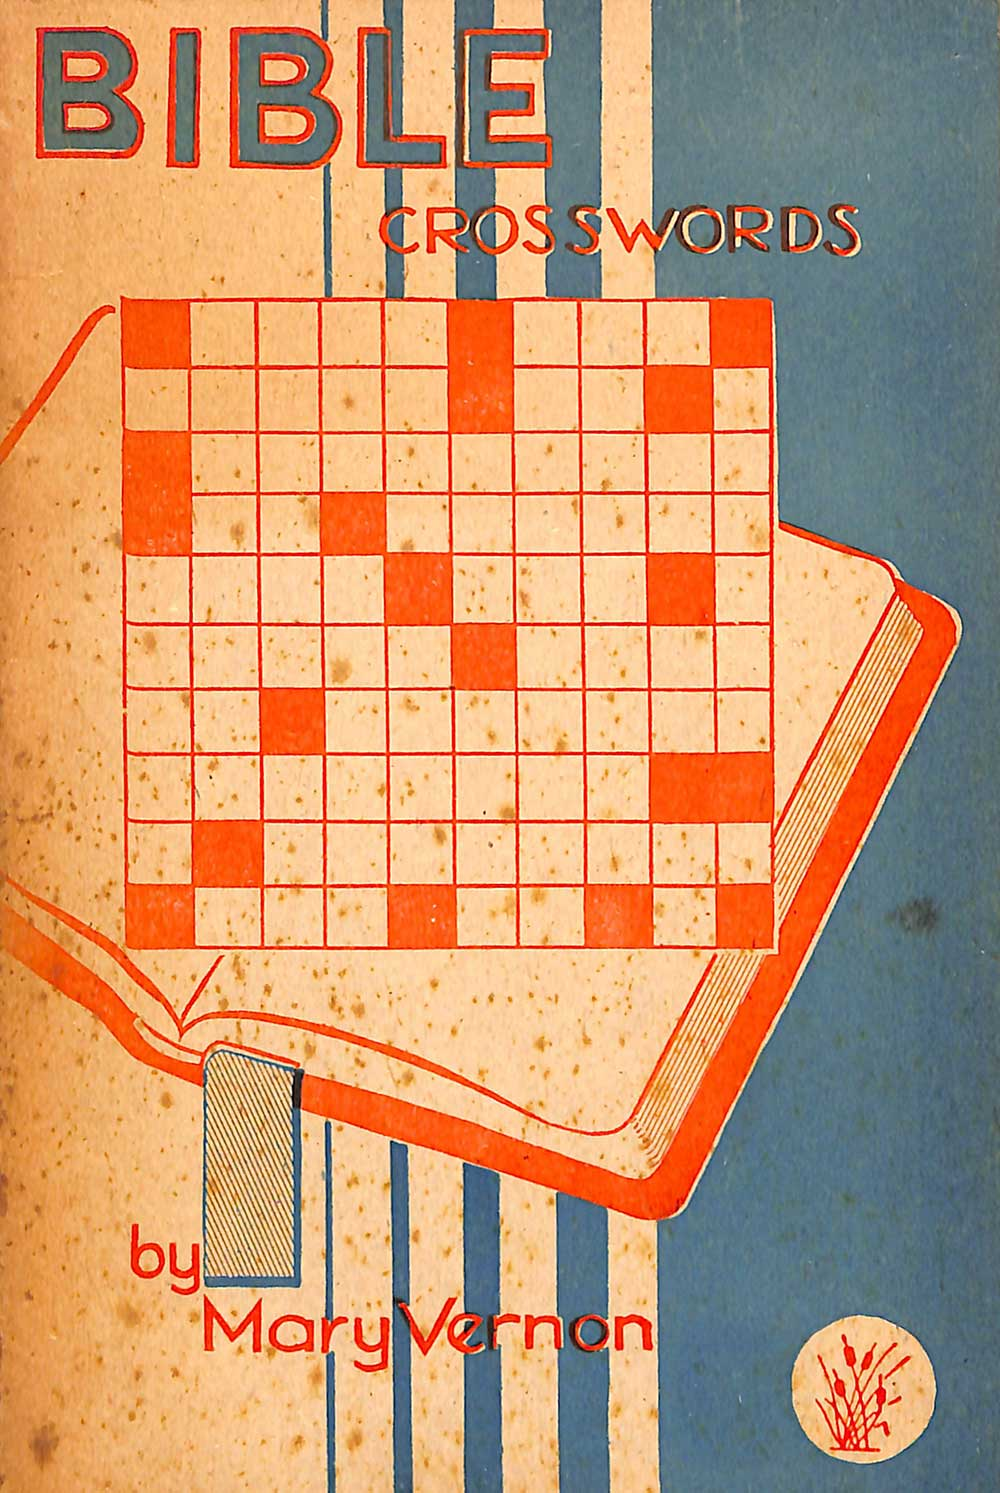 Mary Vernon. <em>Bible crosswords and picture puzzles.</em> Wellington: A.H. & A.W. Reed, [1947]